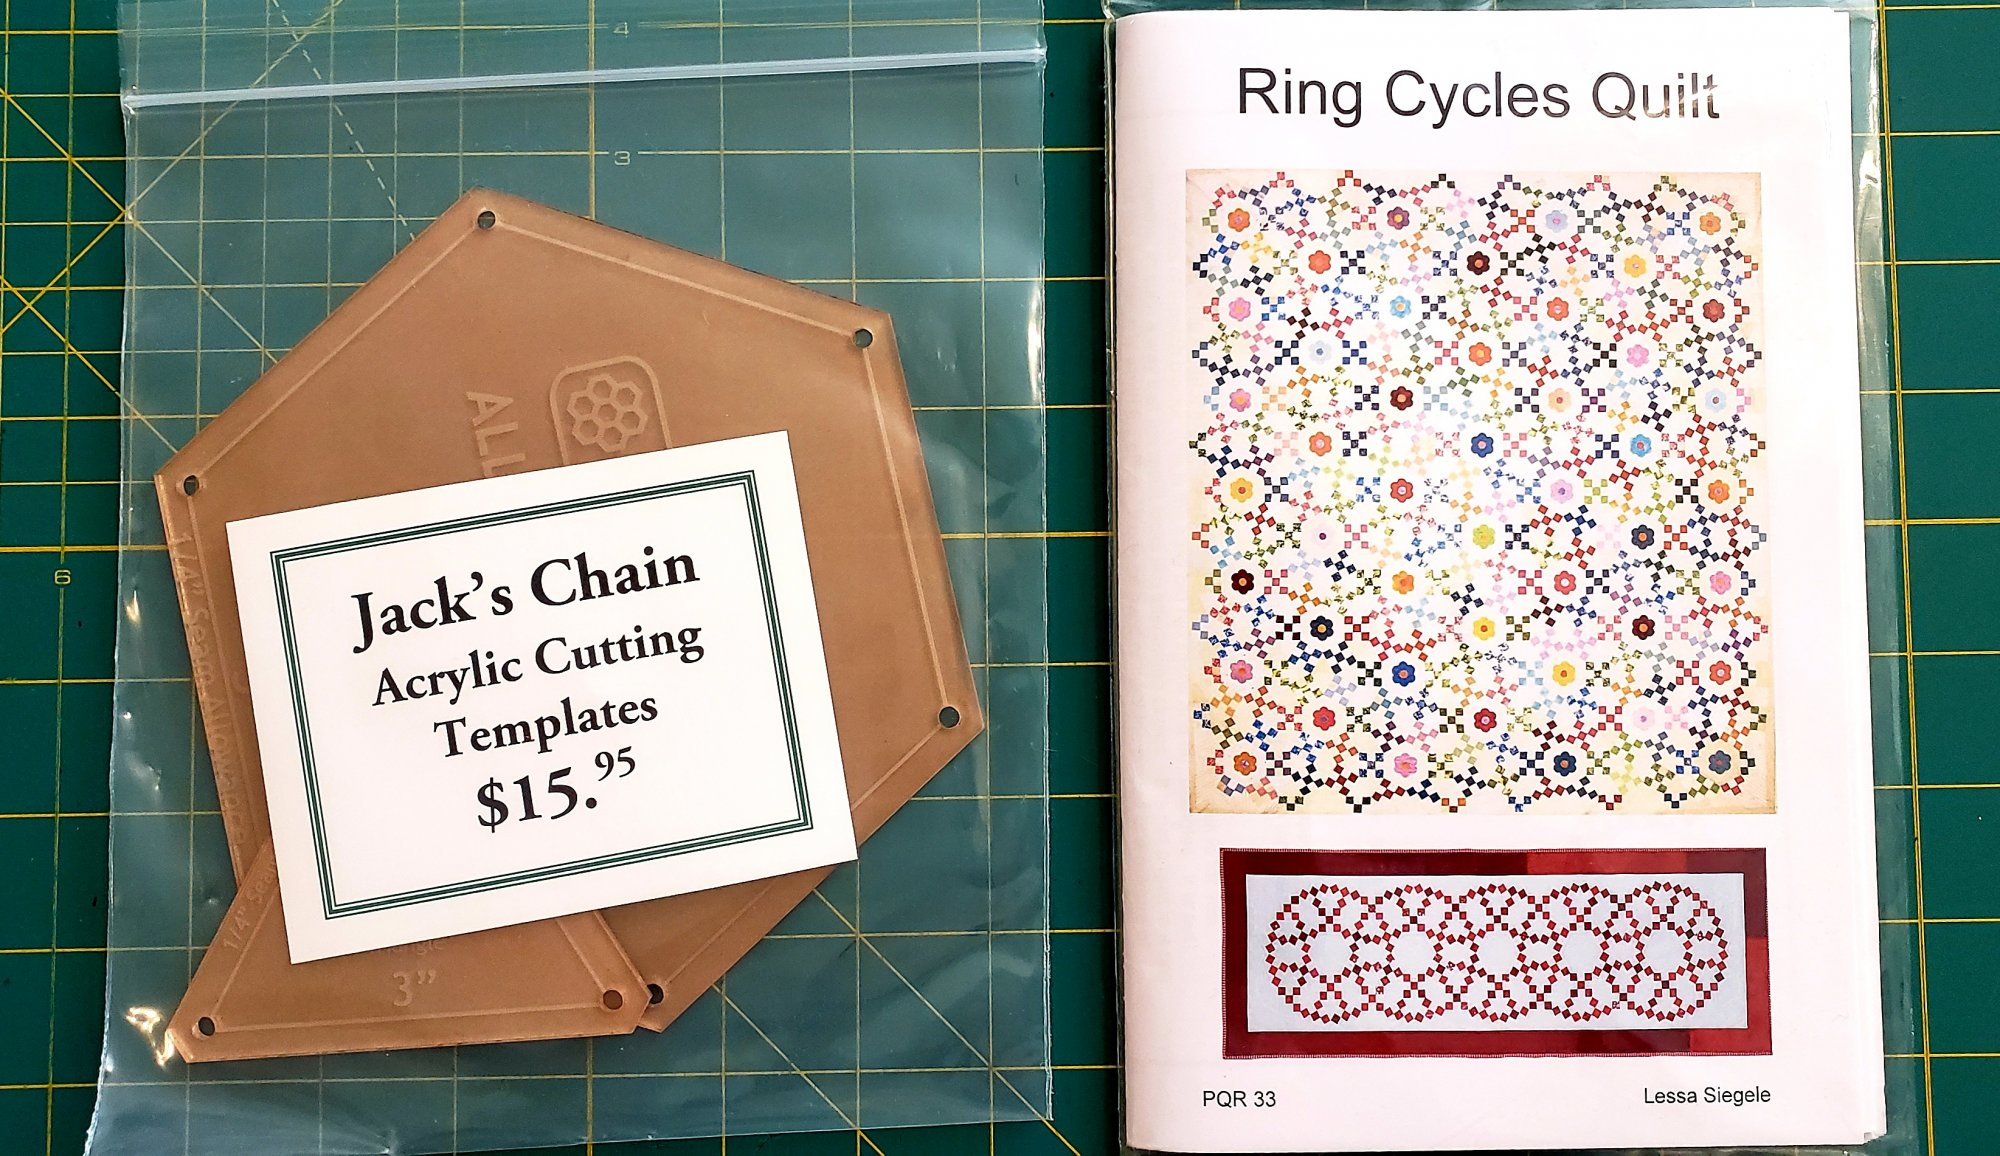 Jack's Chain & Templates